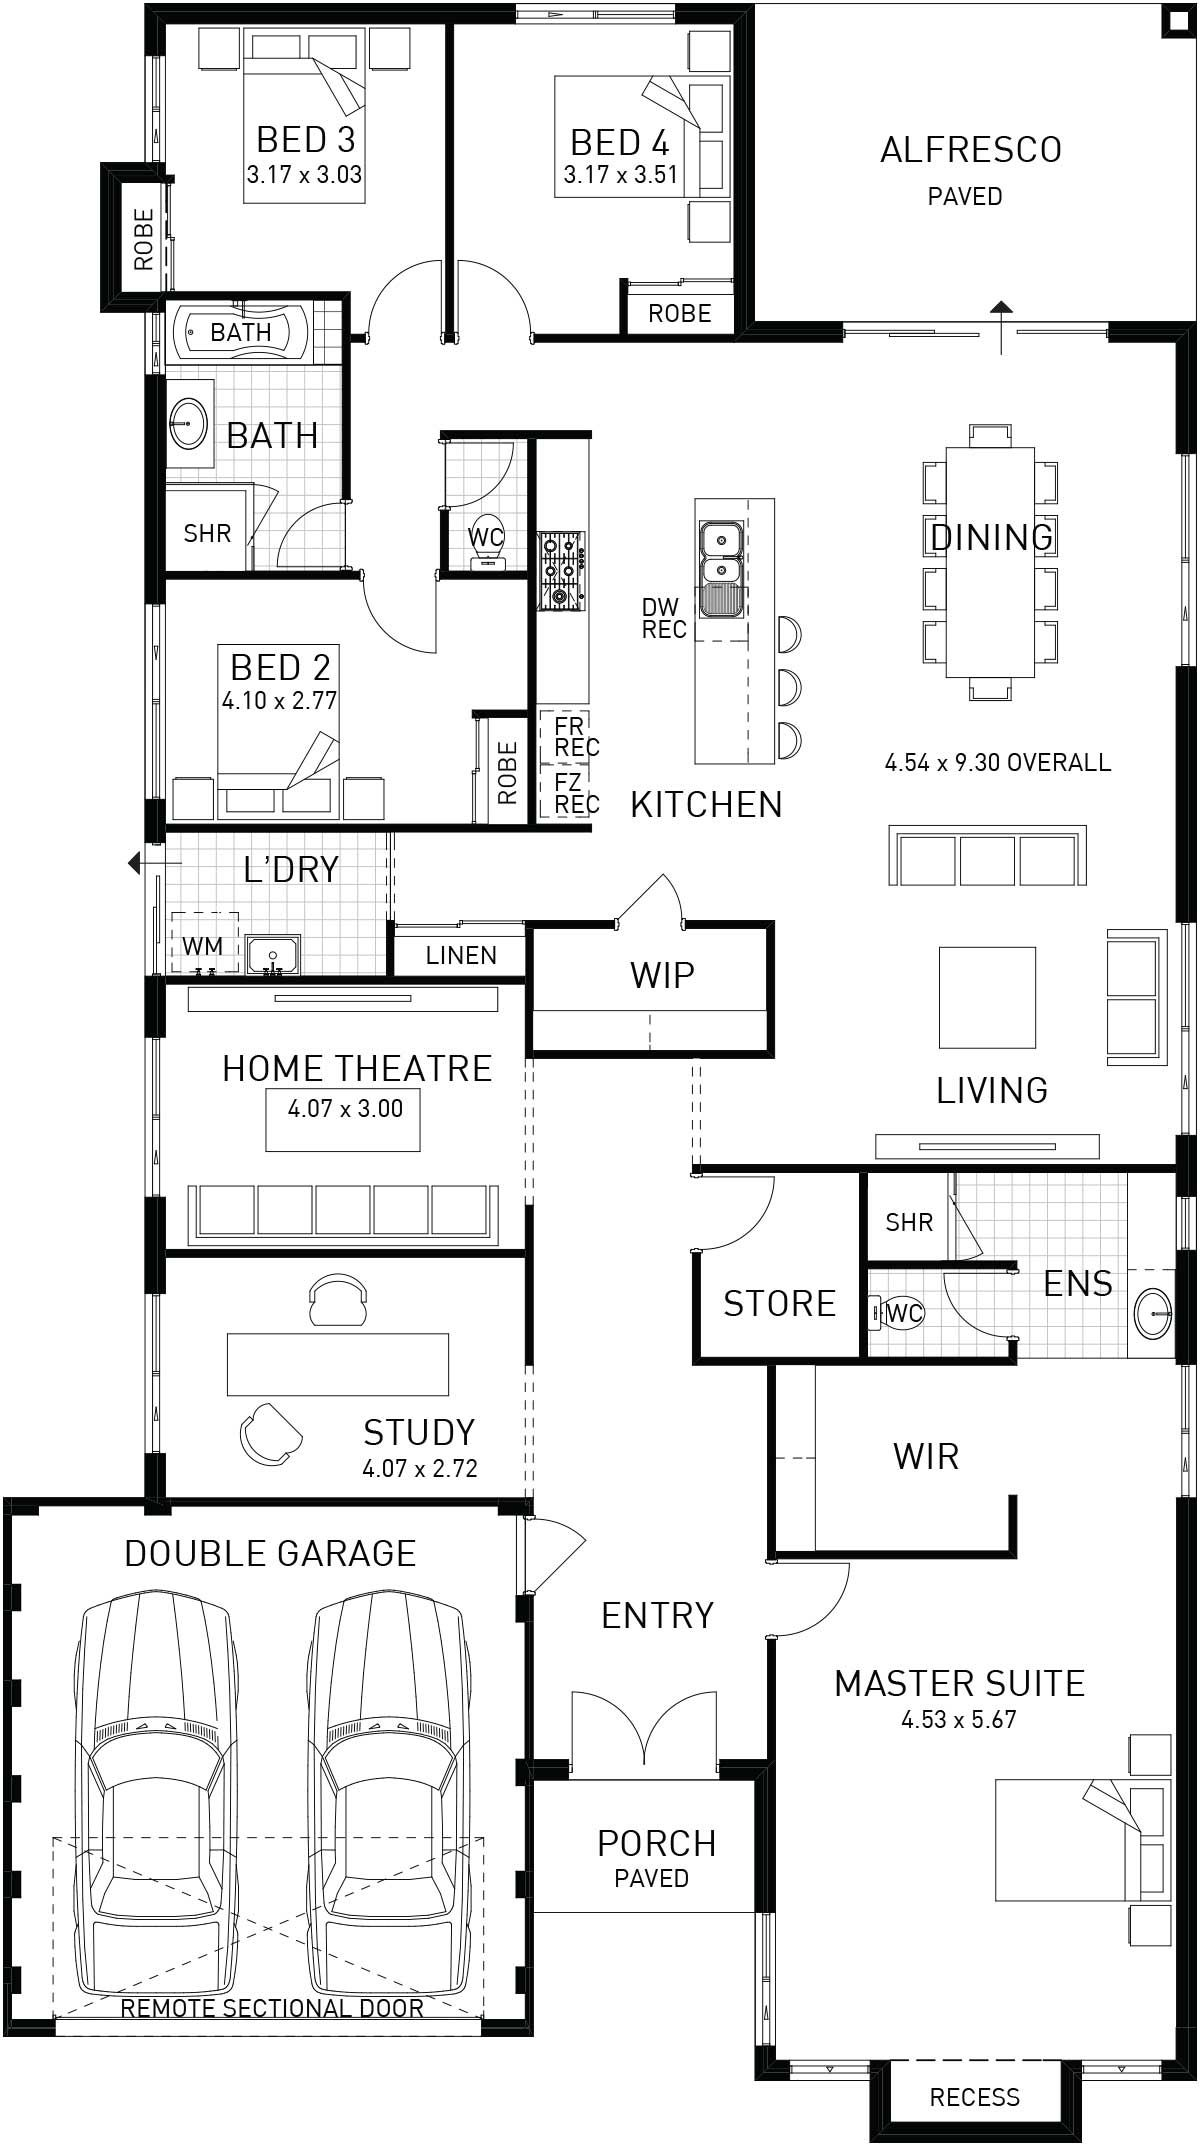 Riviera, Single Storey Home Design Foundtion Floor Plan, WA